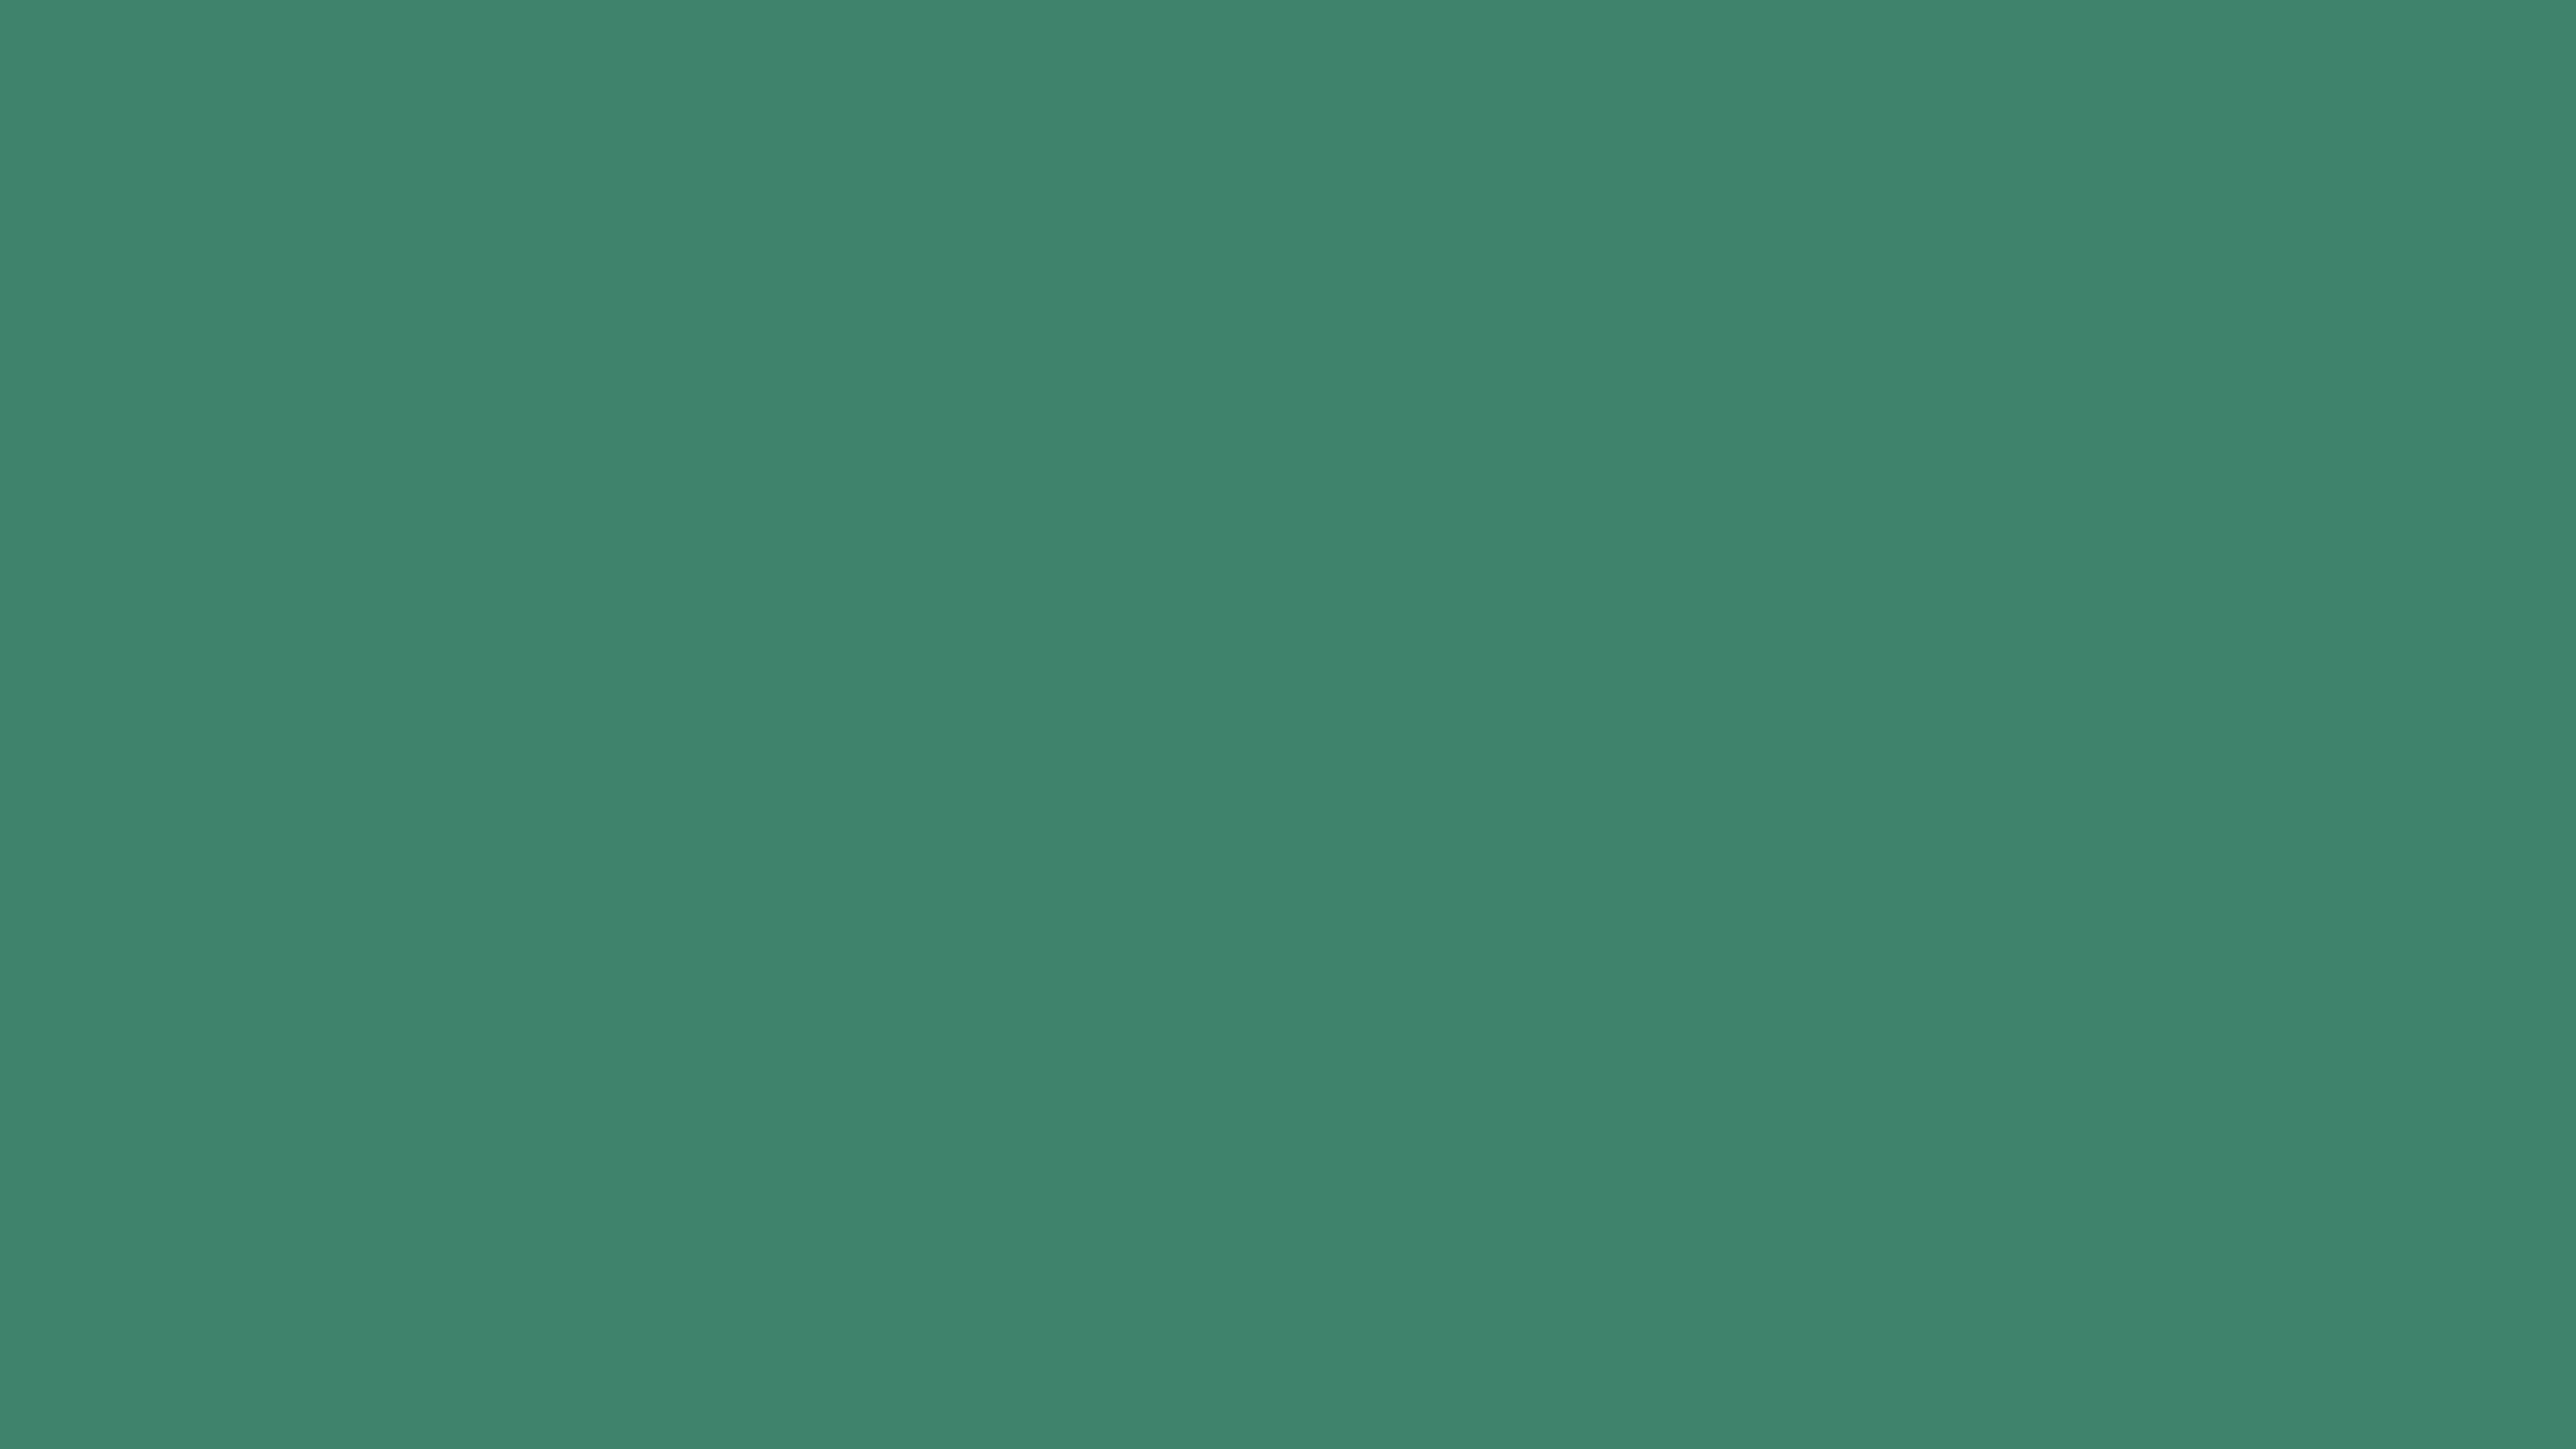 5120x2880 Viridian Solid Color Background